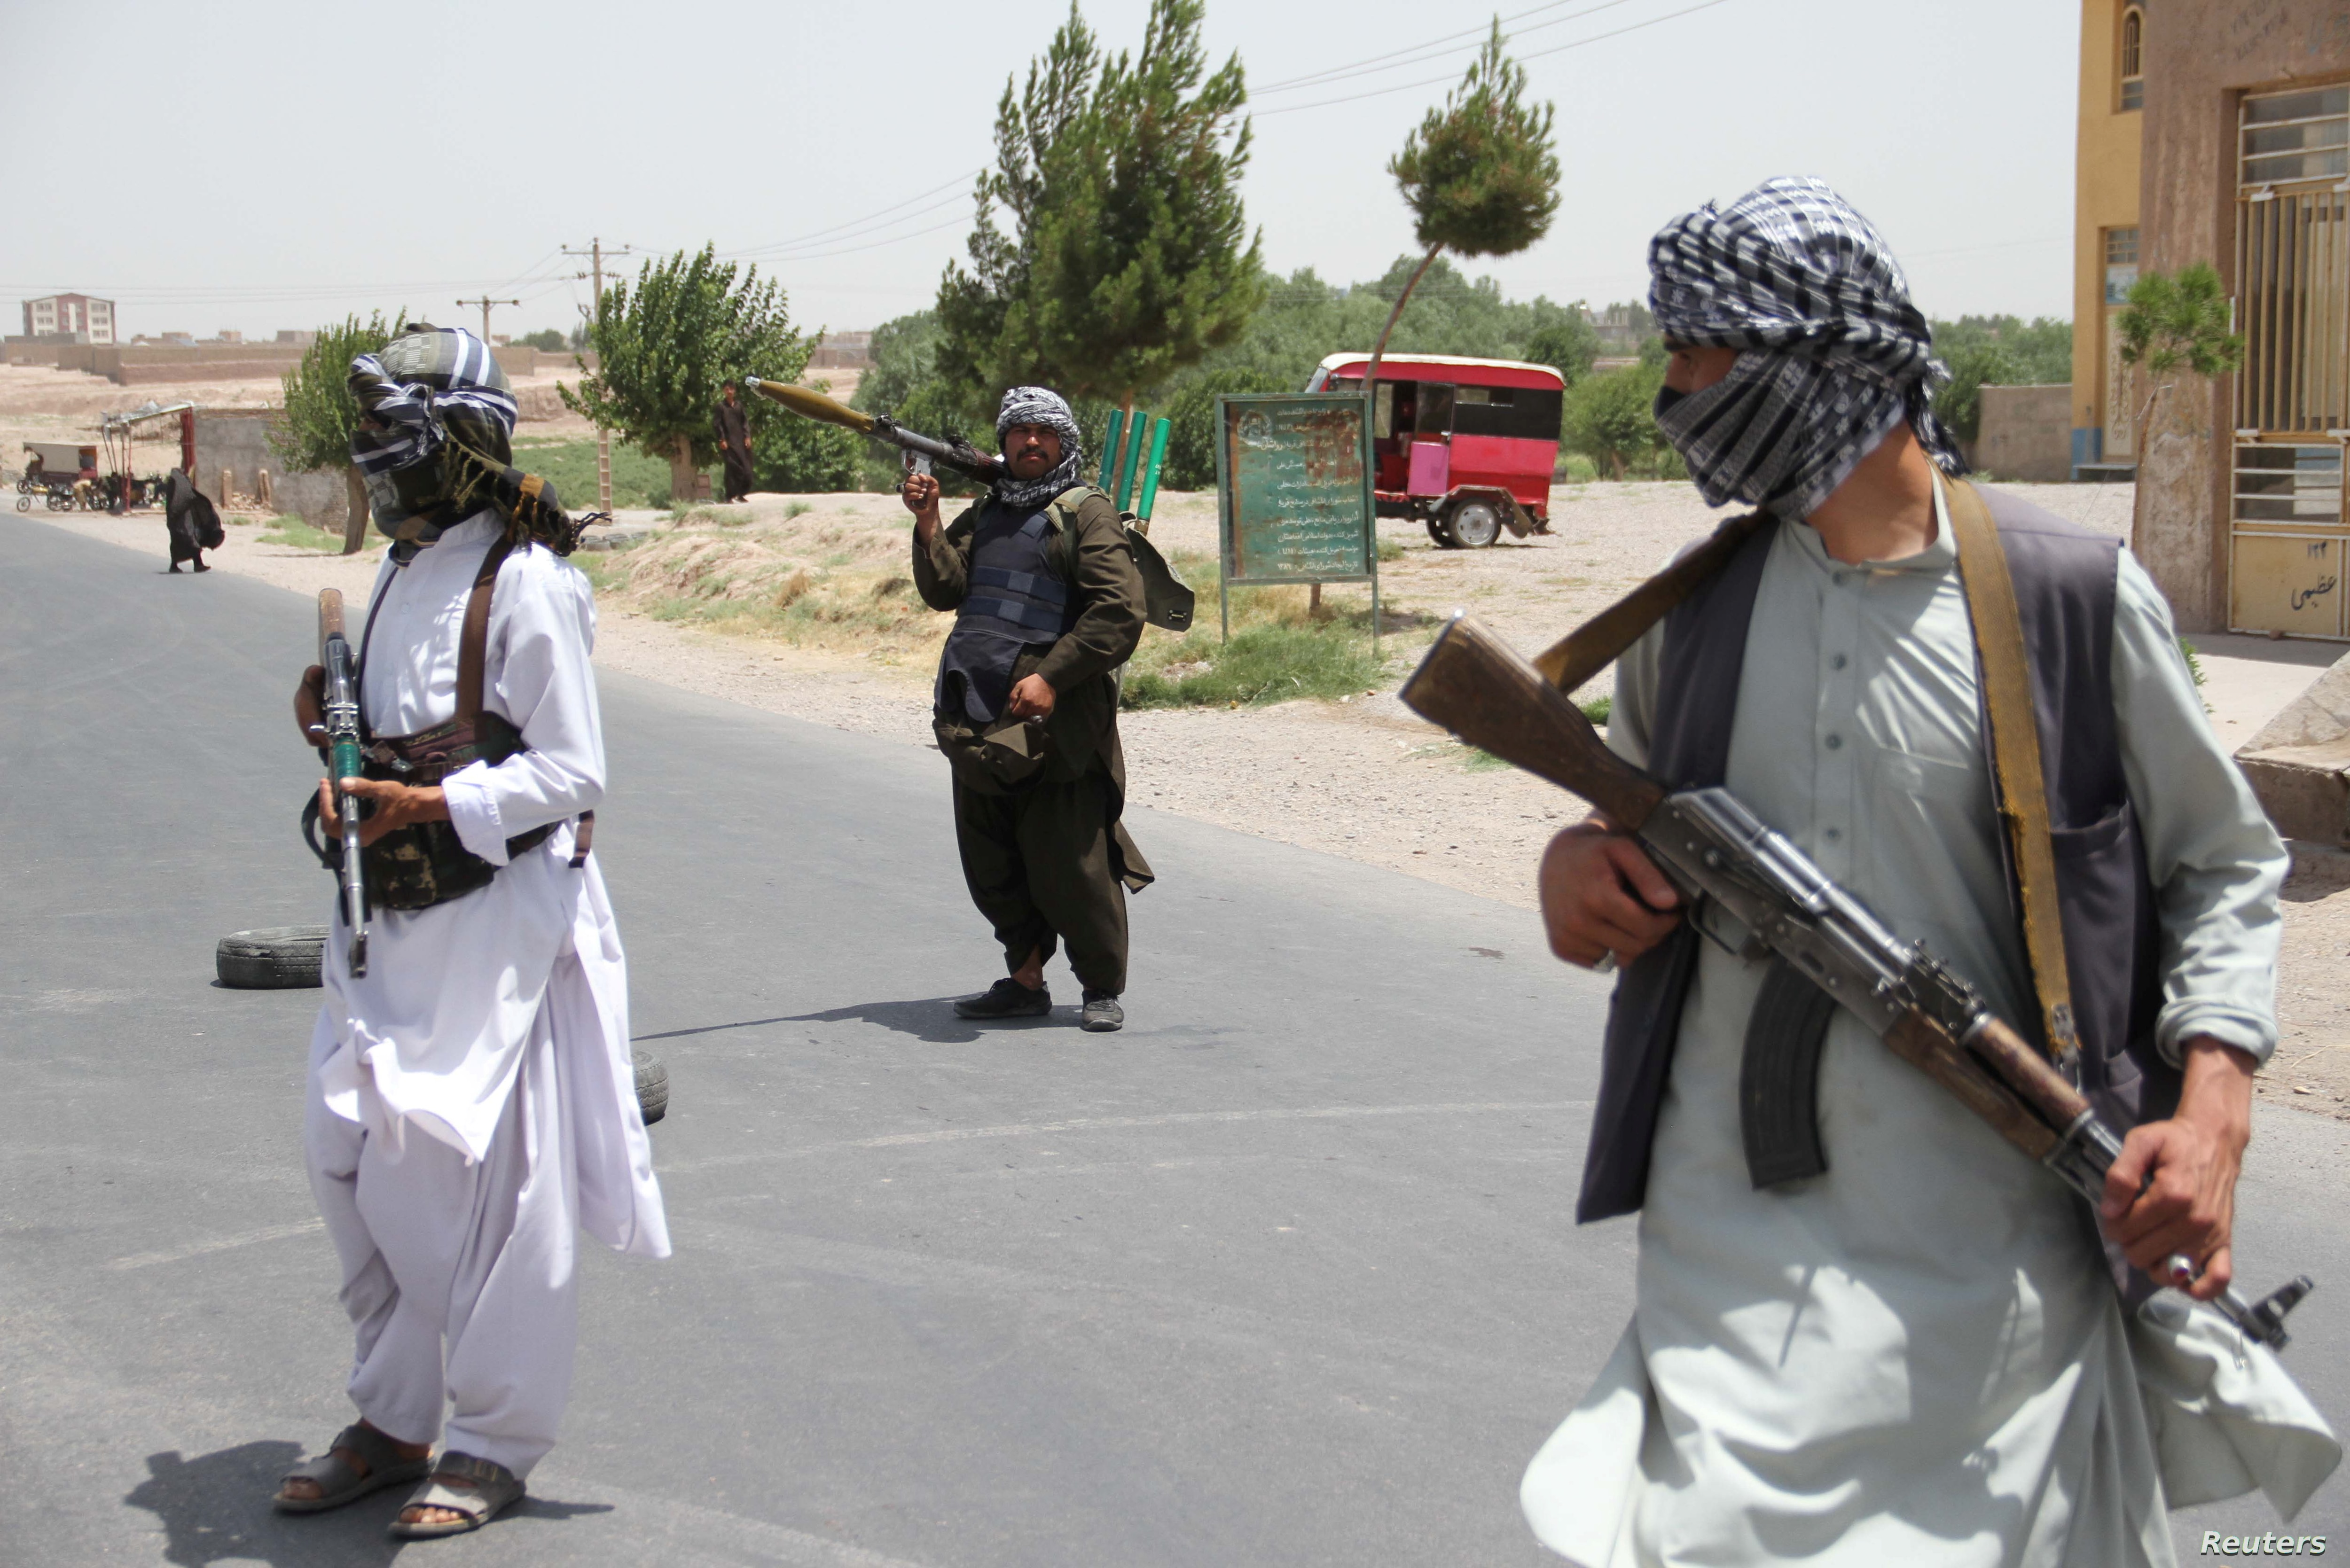 Pentagon Us Concerned About Taliban Advances As American Troops Withdraw Voice Of America English